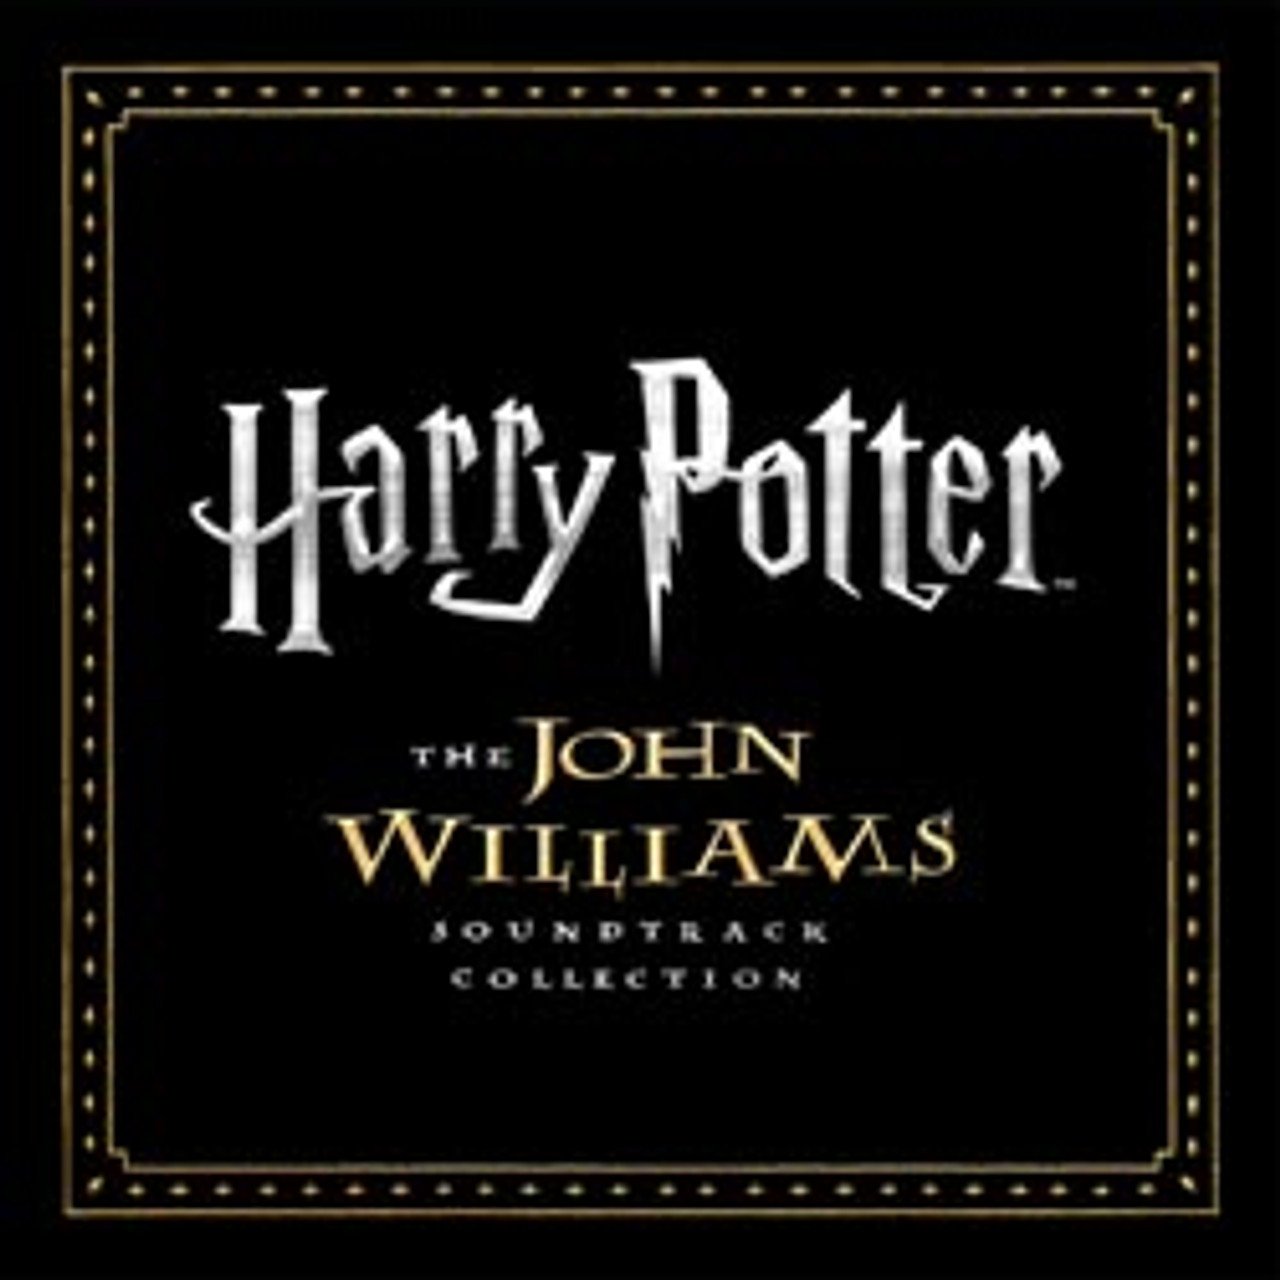 HARRY POTTER – THE JOHN WILLIAMS SOUNDTRACK COLLECTION: LIMITED EDITION  (7-CD BOX SET)